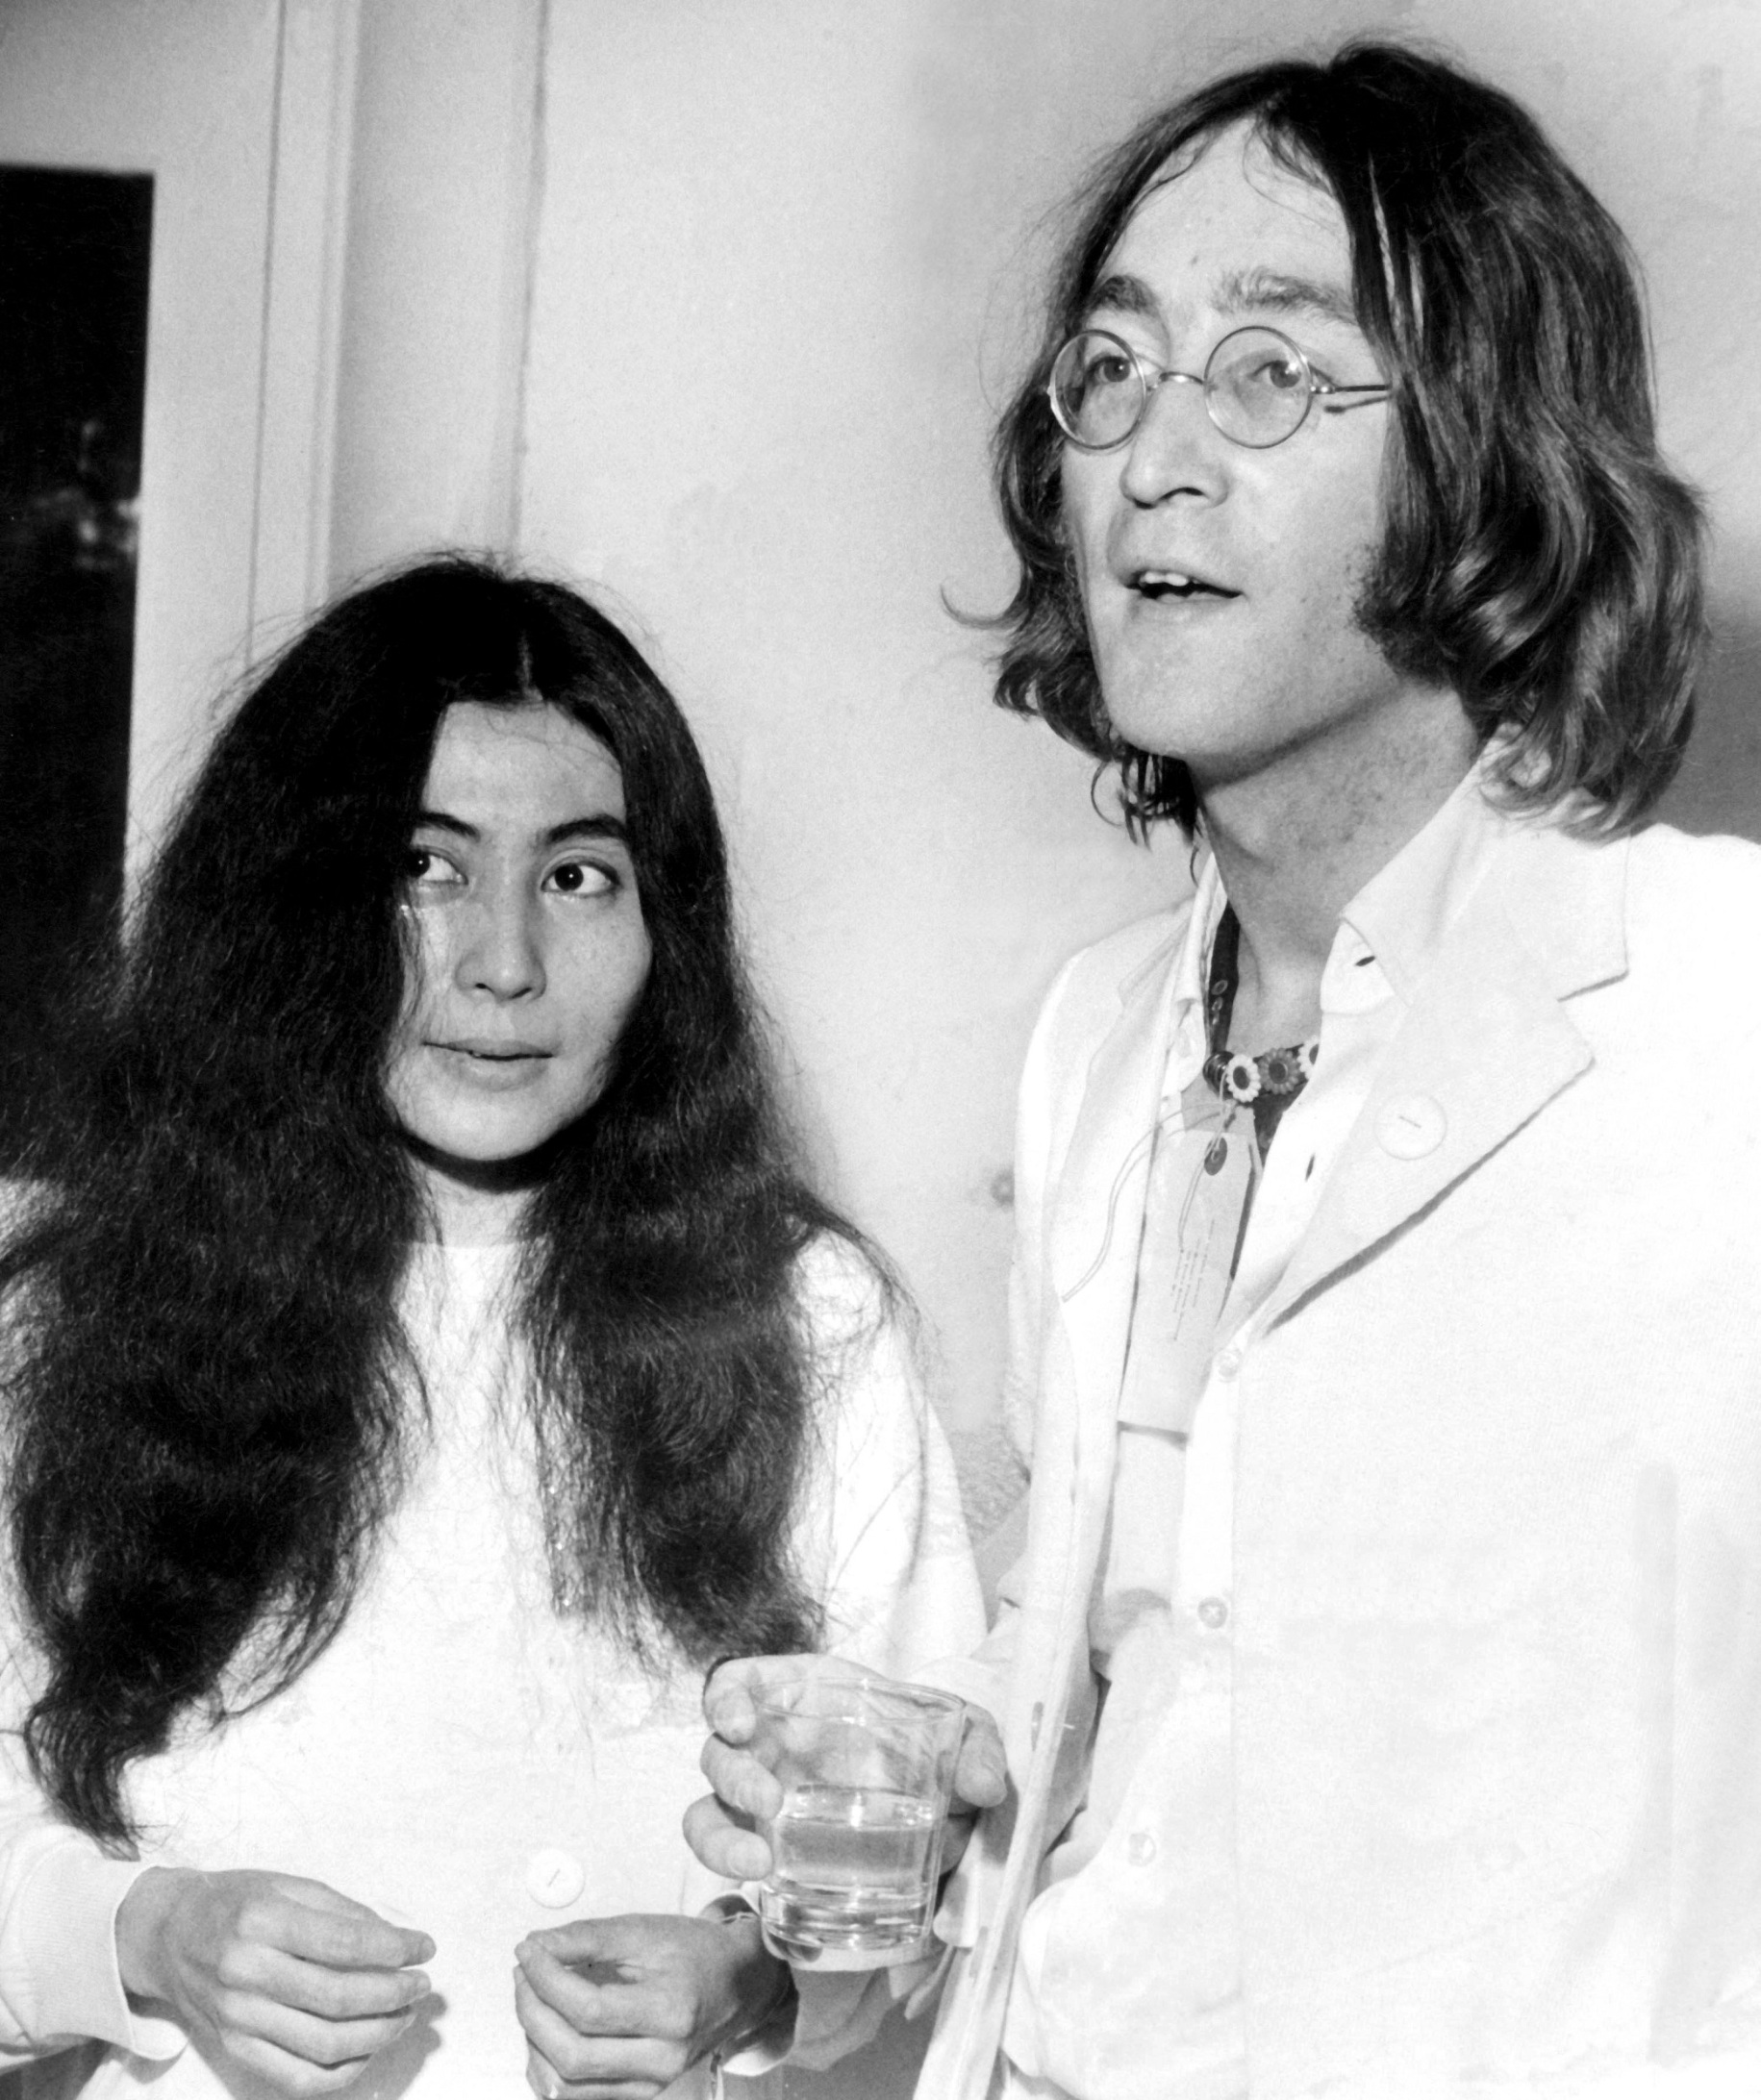 John Lennon with Yoko Ono at a show of John's art works dedicated to Yoko at a Mayfair gallery. London - 1st July 1968,Image: 304577306, License: Rights-managed, Restrictions: UK USE ONLY. Reproduction fee payable on use. For queries contact Photoshot on + 44 (0)7421 6000, Model Release: no, Credit line: STARSTOCK/Photoshot / Avalon Editorial / Profimedia